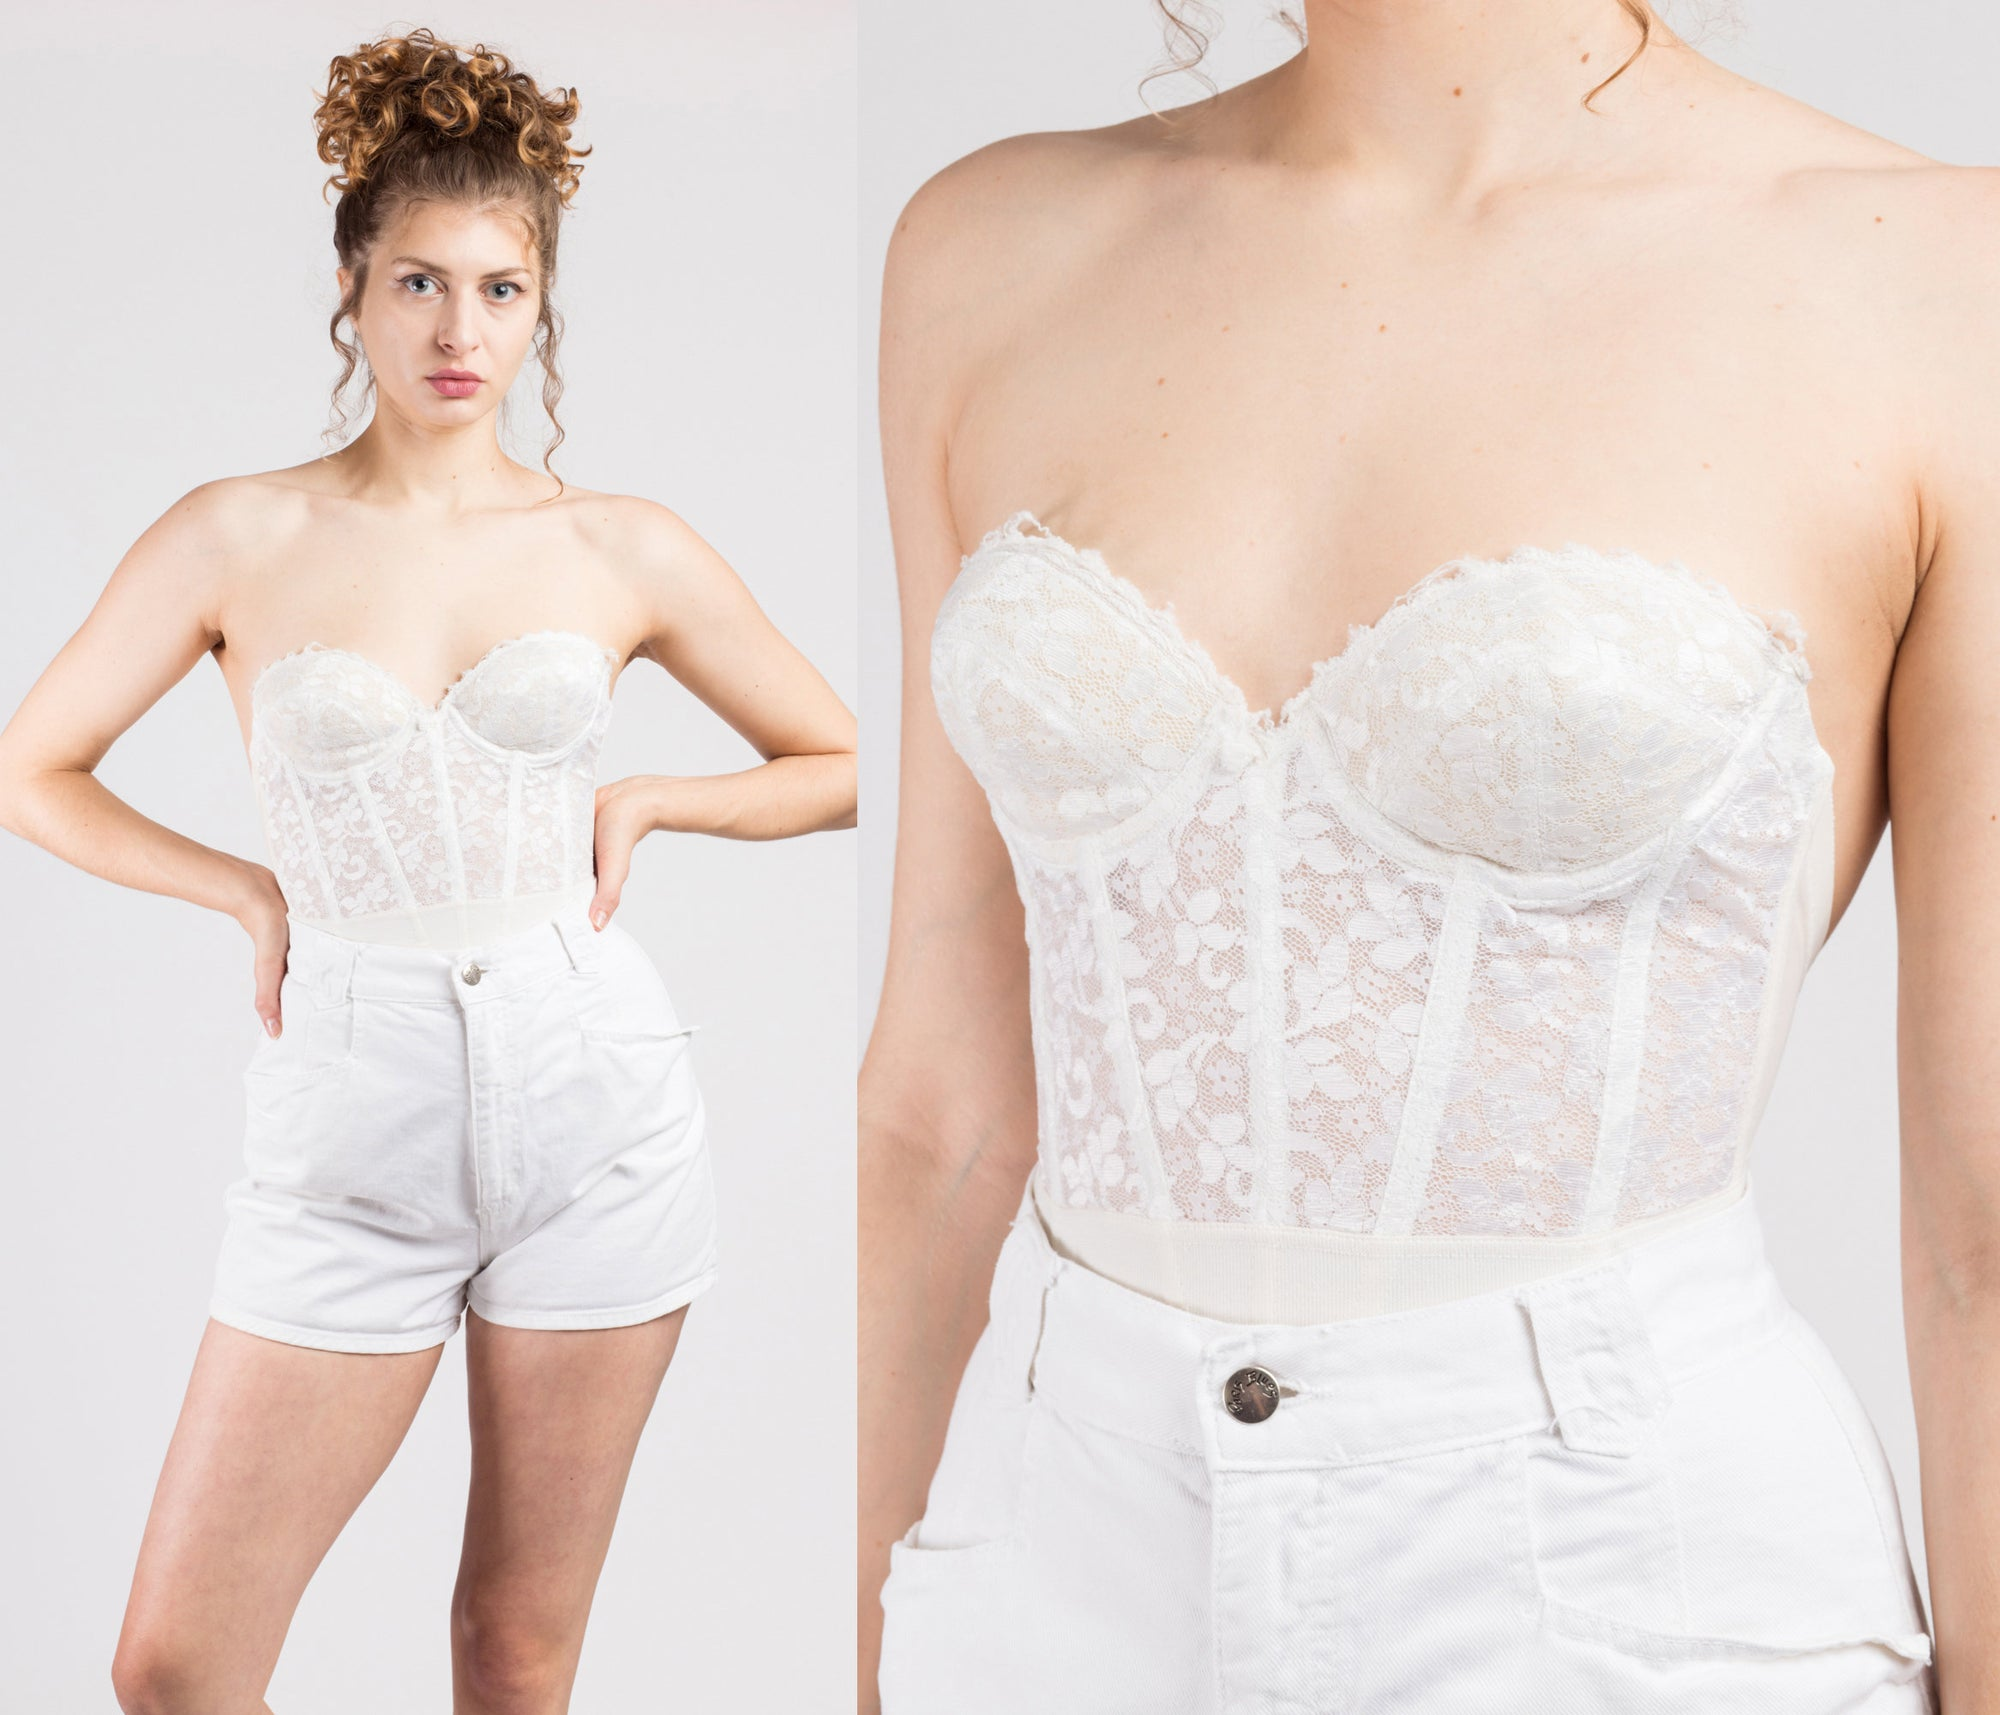 70s 80s White Floral Lace Bustier - 34B